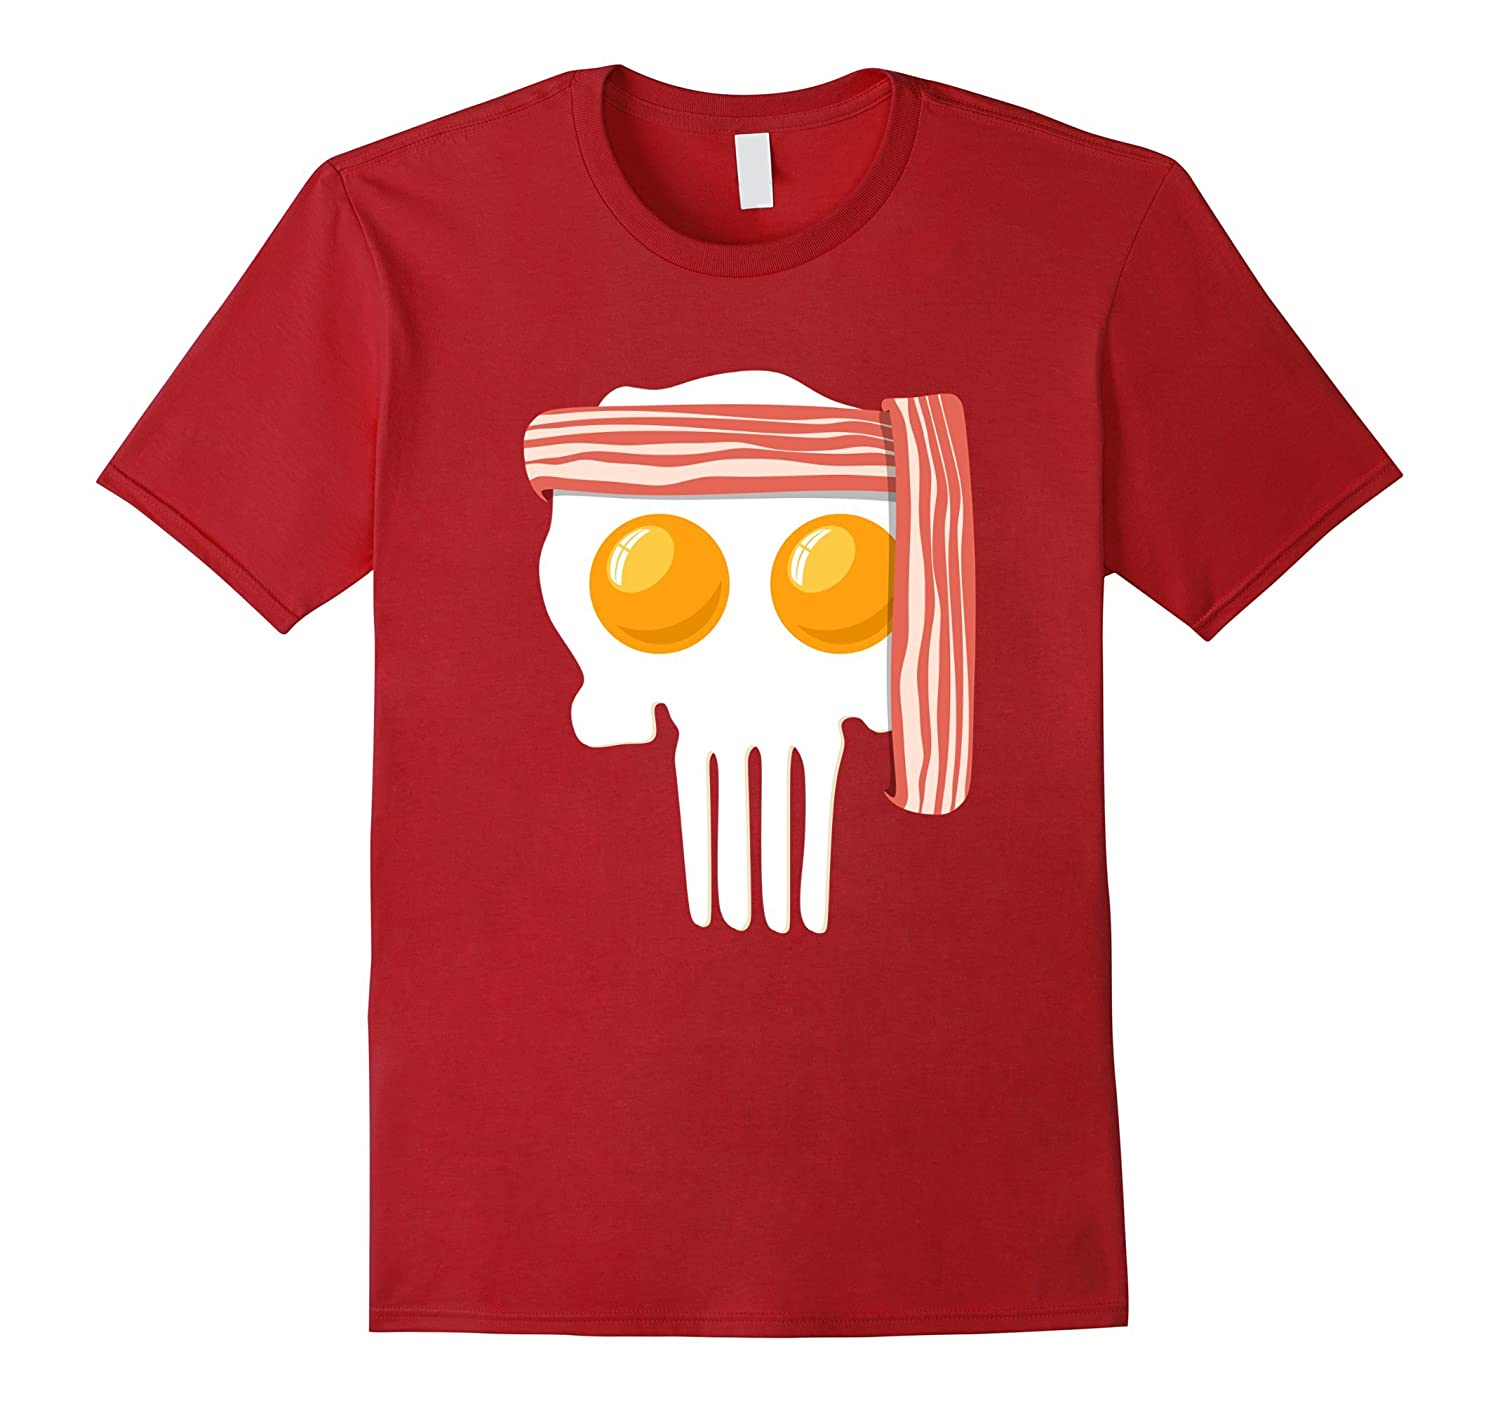 Scary Bacon and Egg T Shirt - Halloween Egg and Bacon Shirt-FL